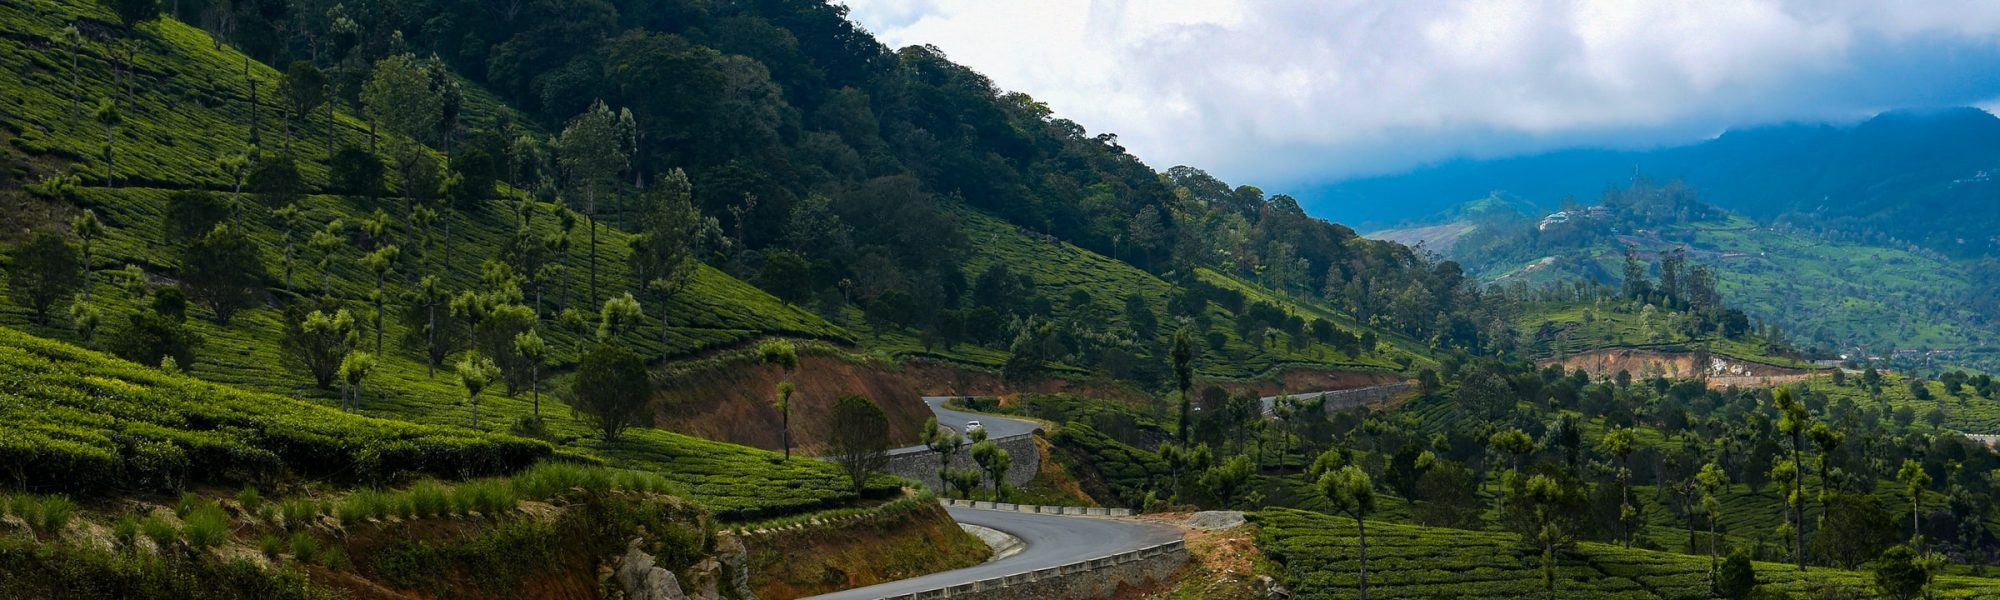 15 Incredibly Beautiful Places in Kerala